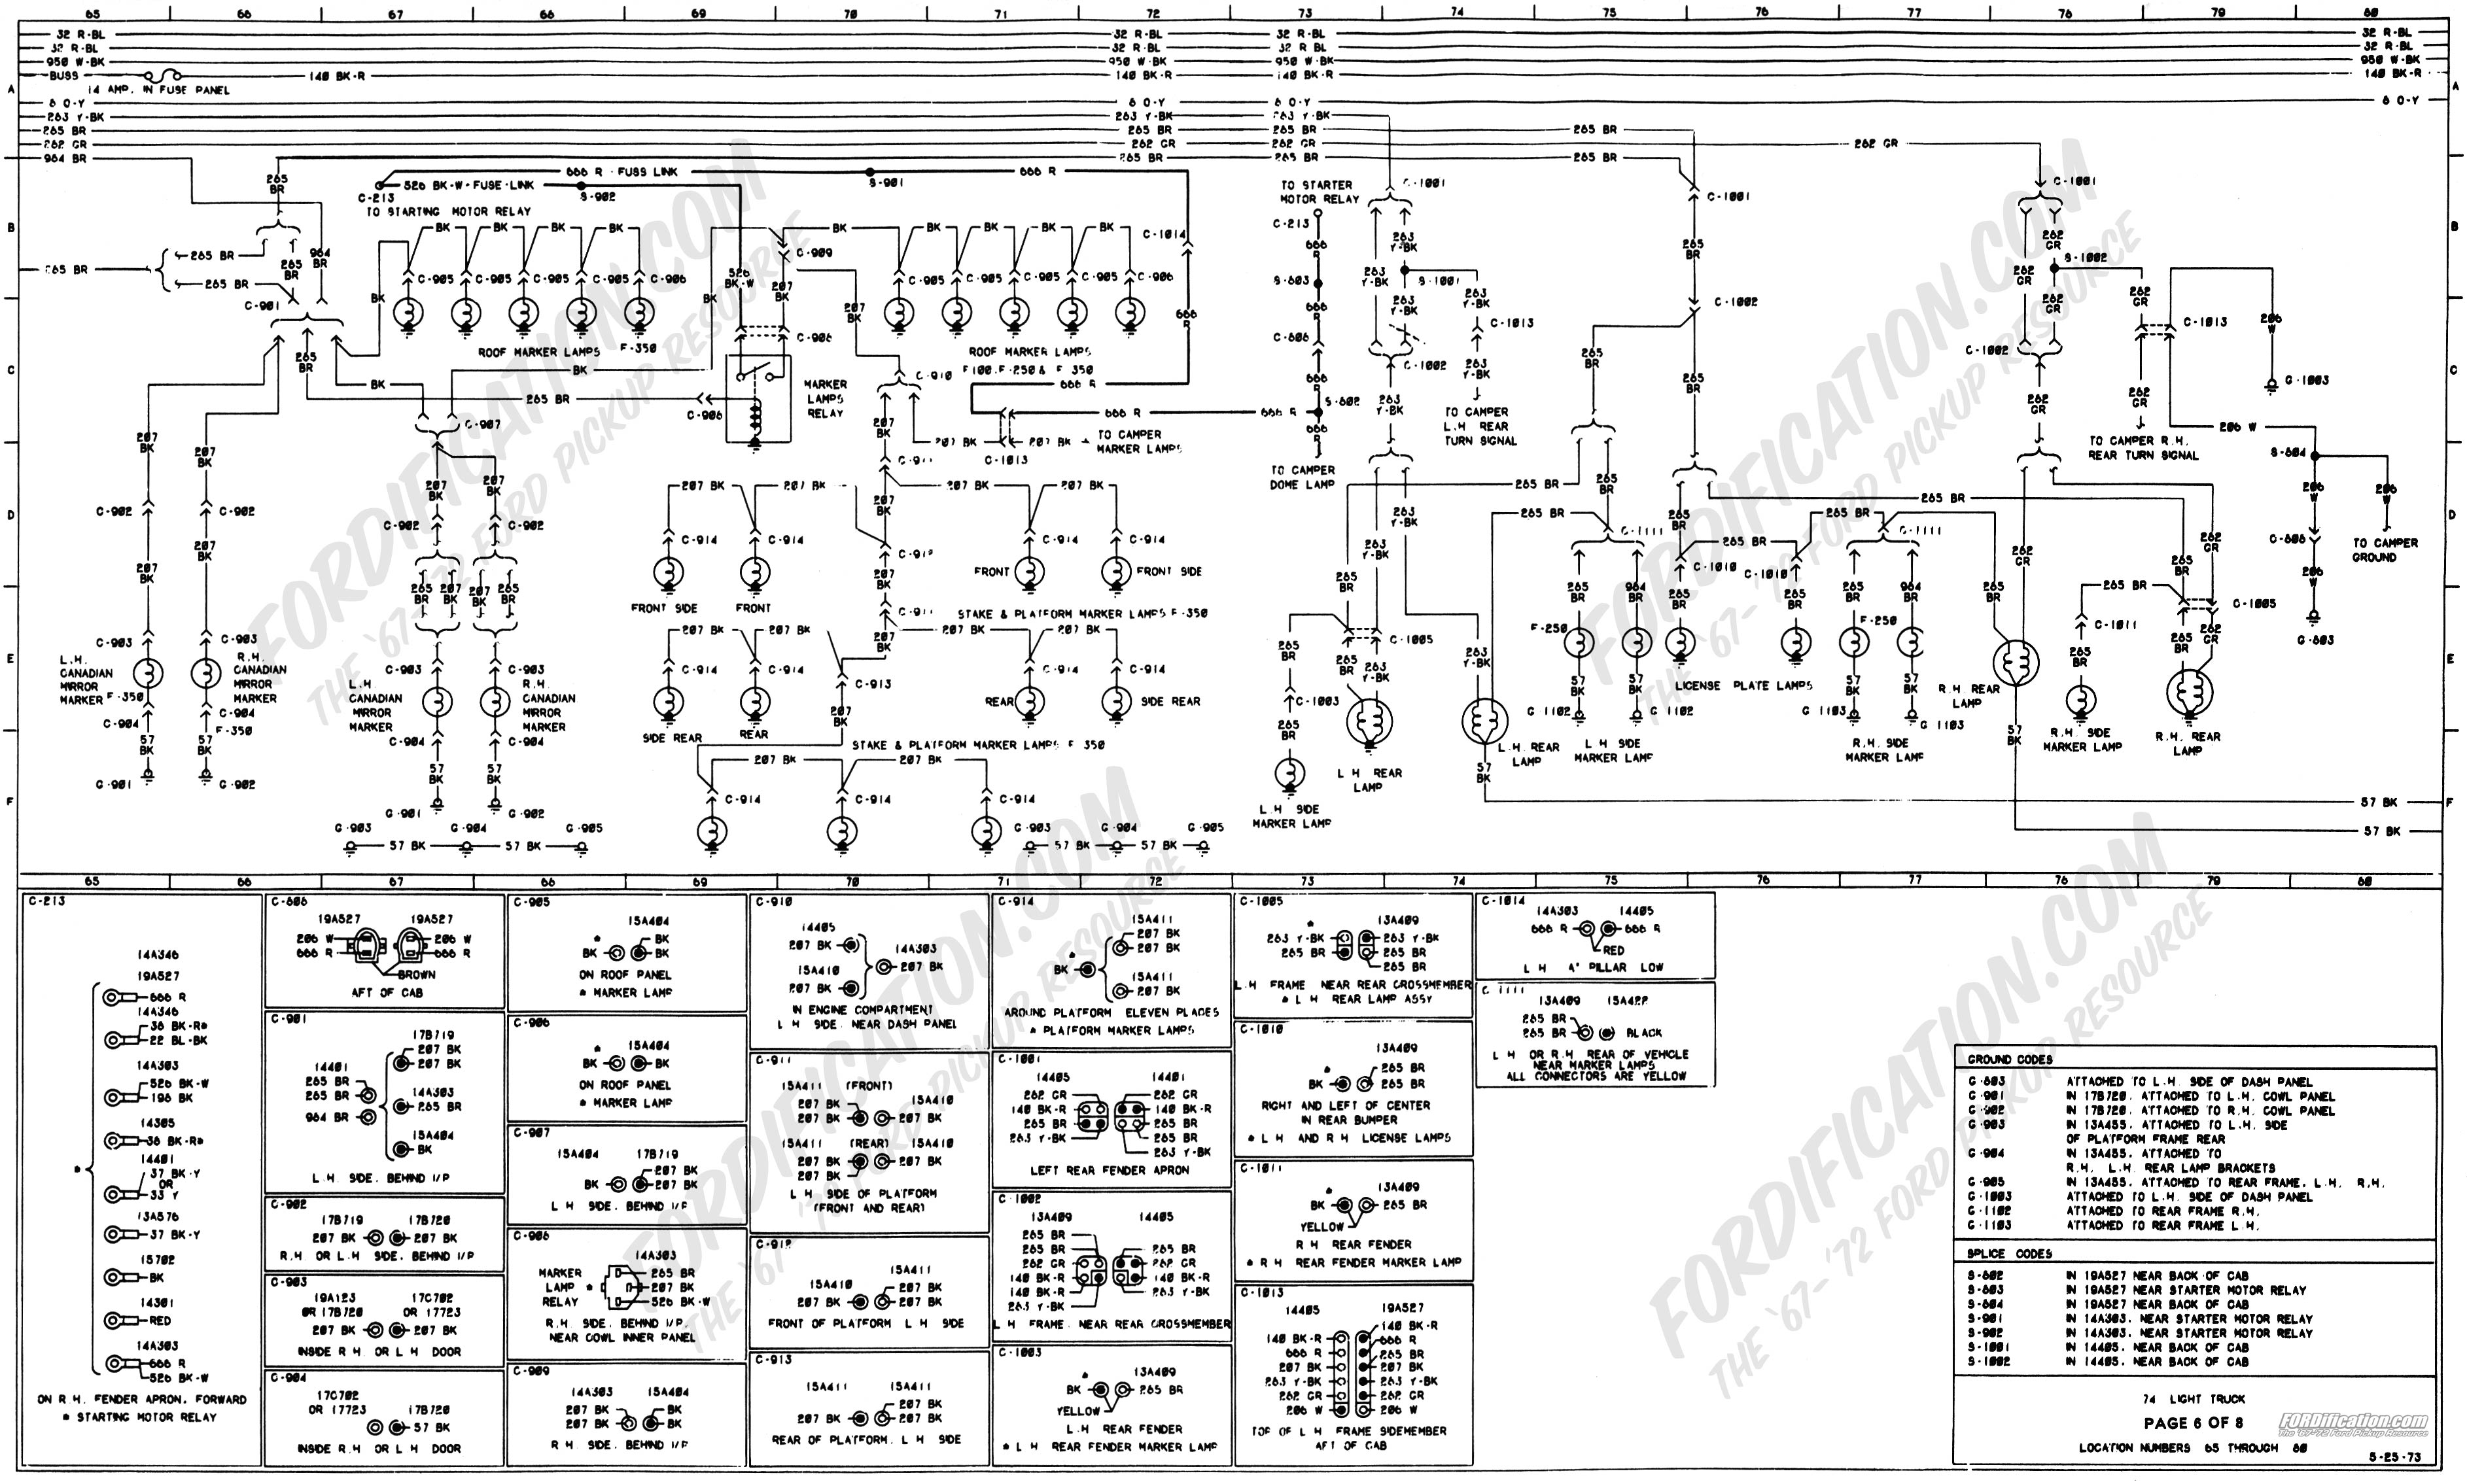 79 f250 wire diagram wiring diagramWiring Diagram For 1979 Ford F250 #2